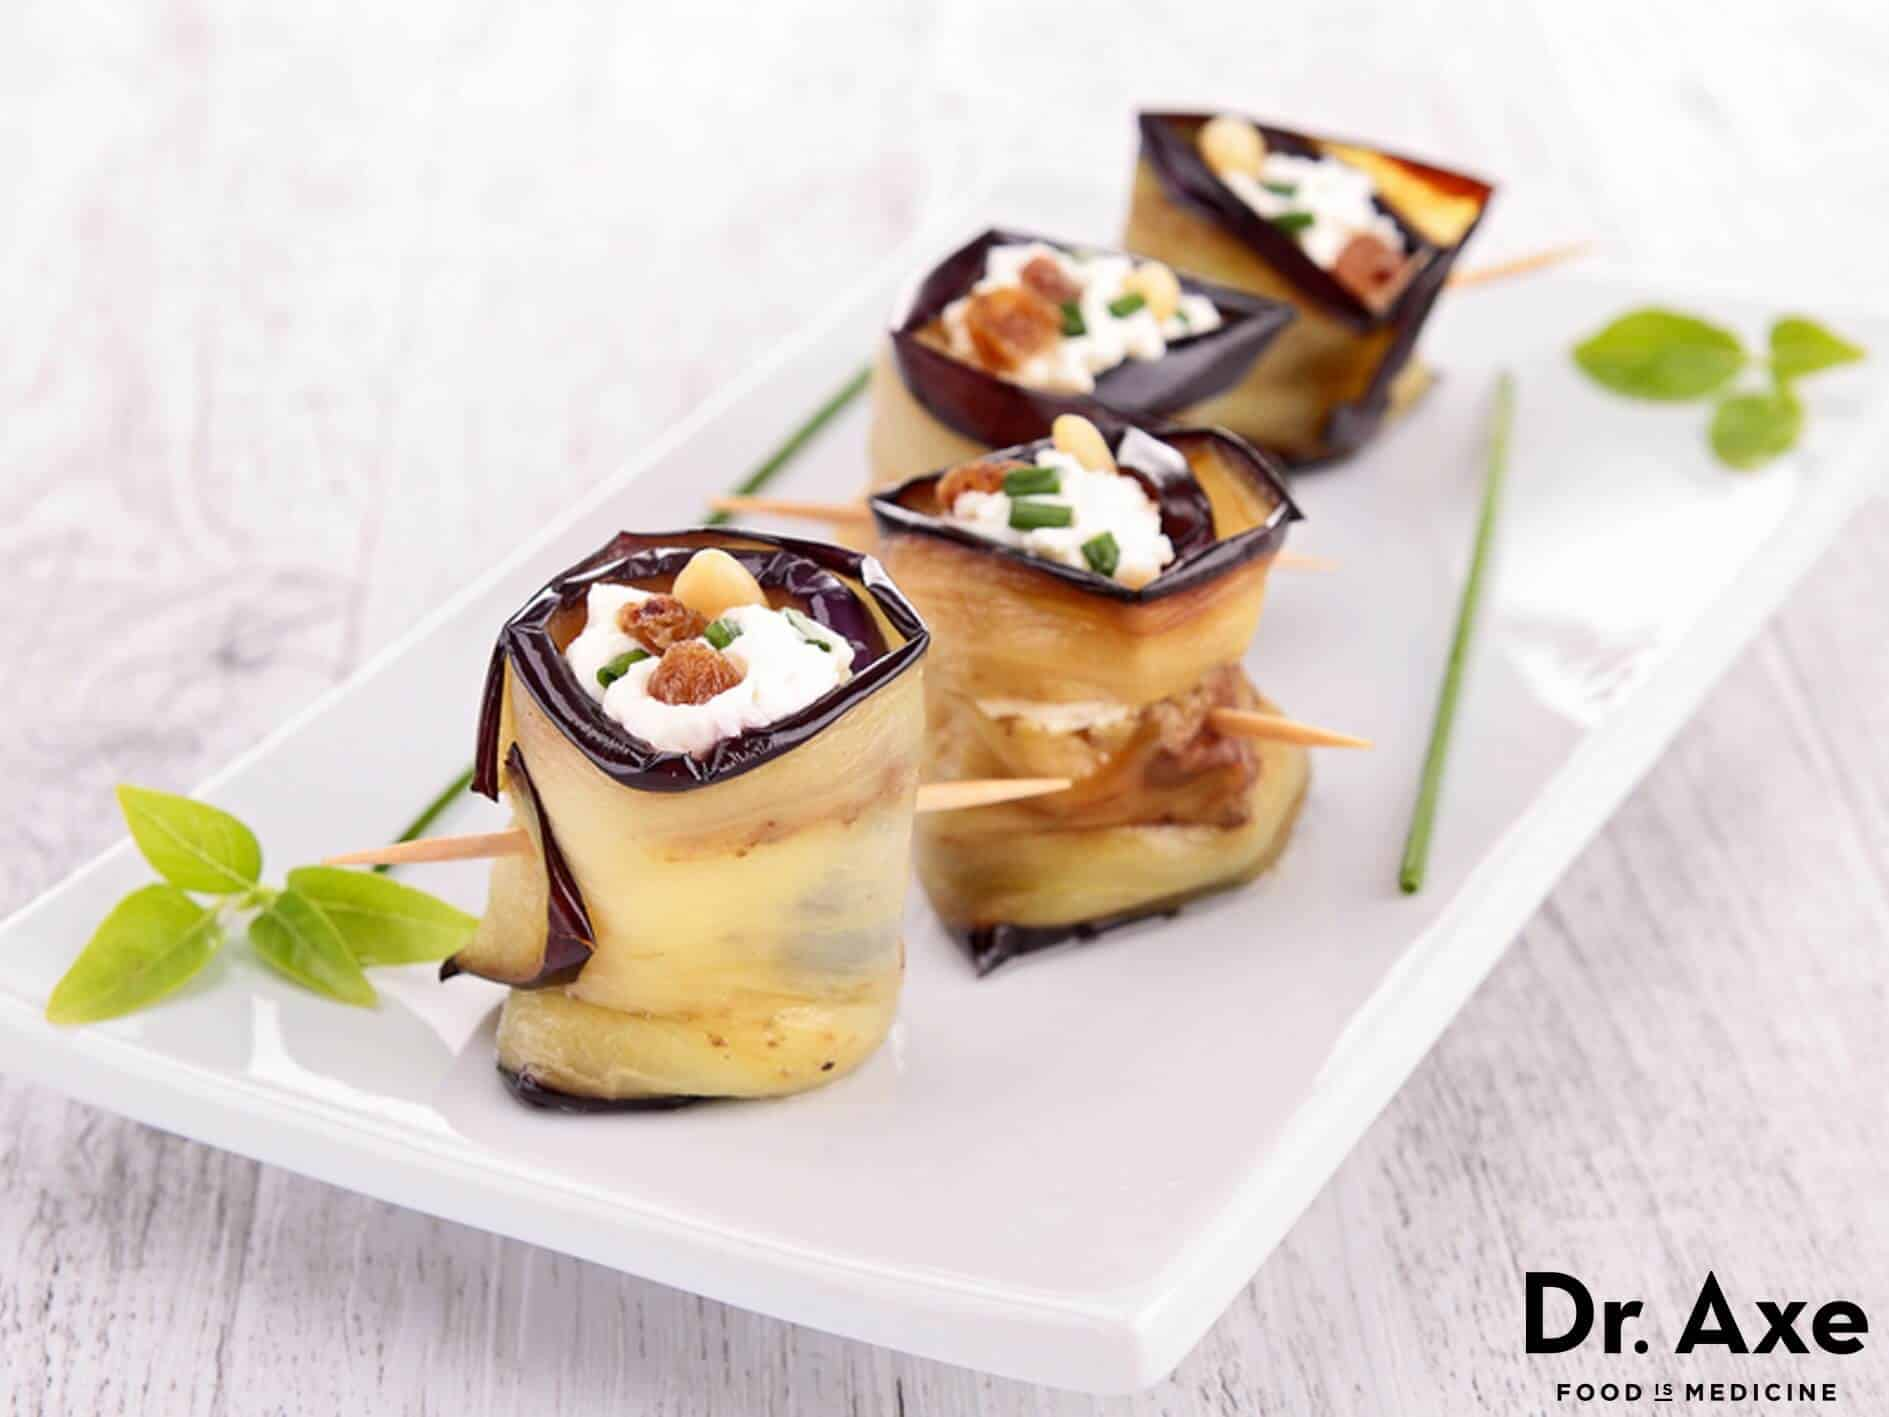 Eggplant-Wrapped Goat Cheese appetizer